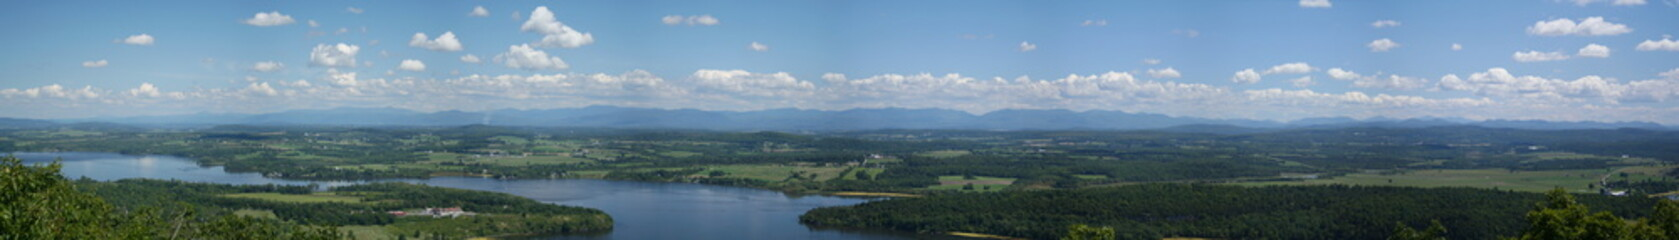 Panoramic View of Adirondack Mountains